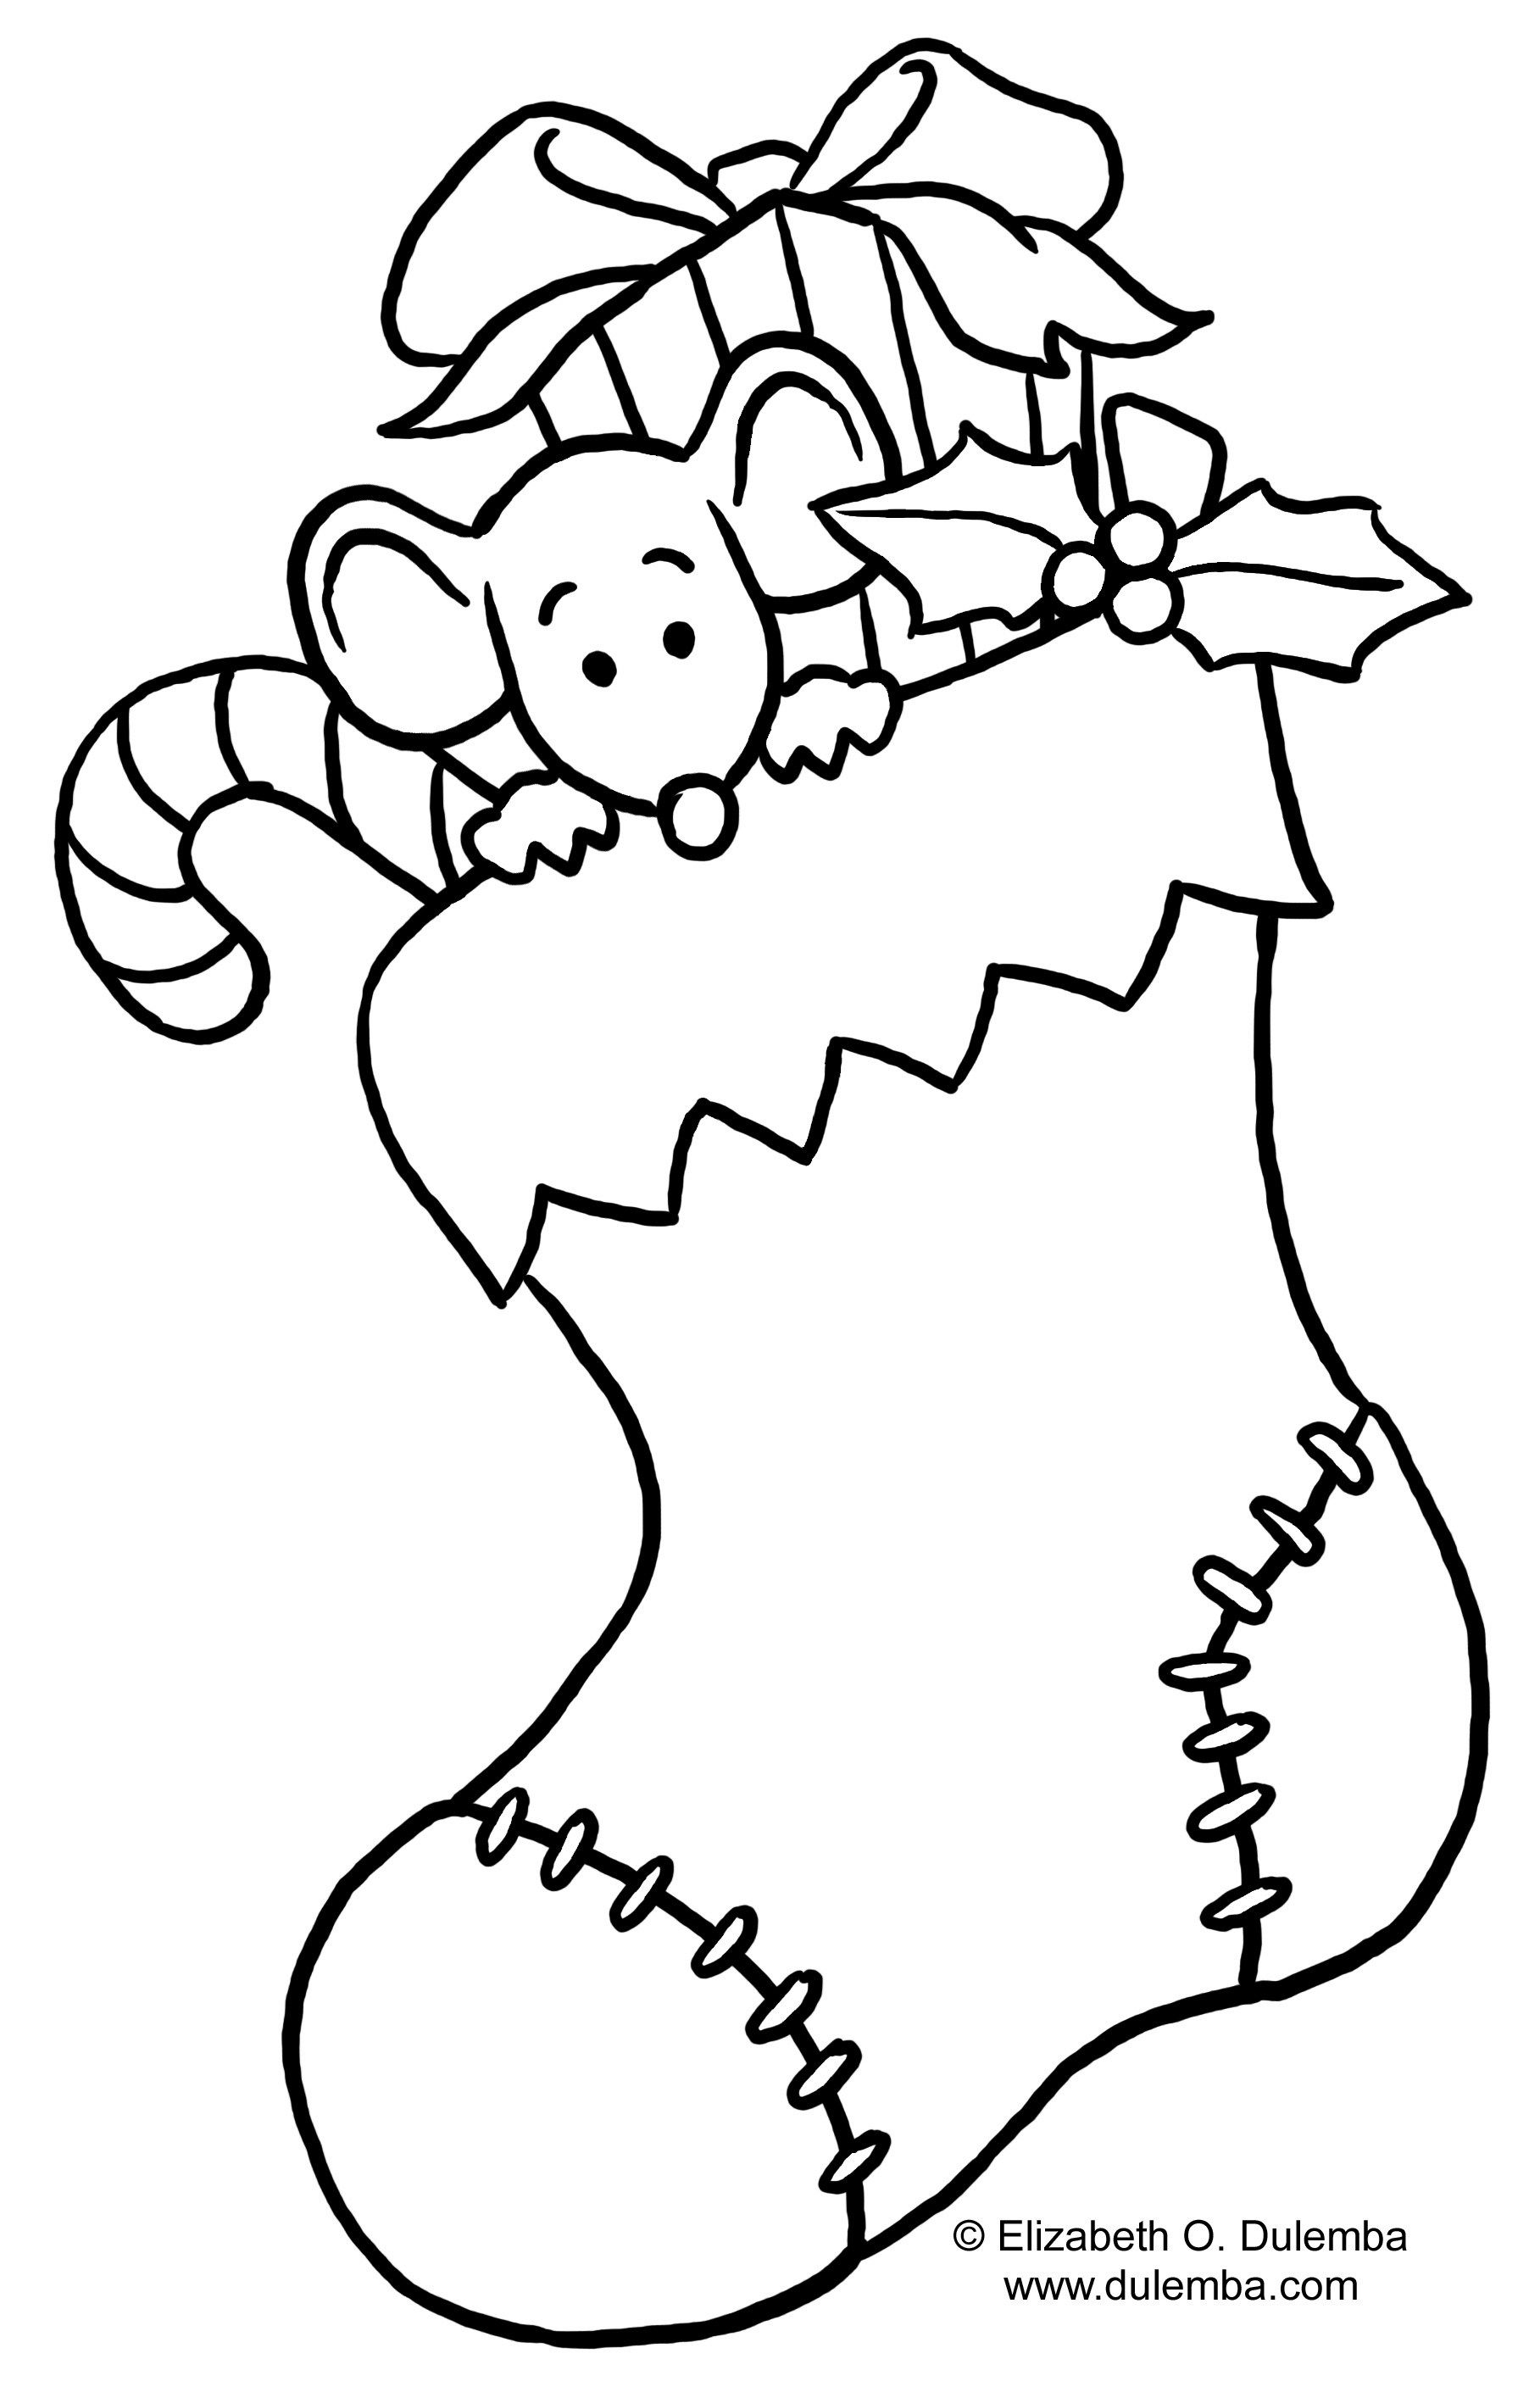 24 Marvelous Image Of Stocking Coloring Page Davemelillo Com Free Christmas Coloring Pages Printable Christmas Coloring Pages Christmas Coloring Sheets